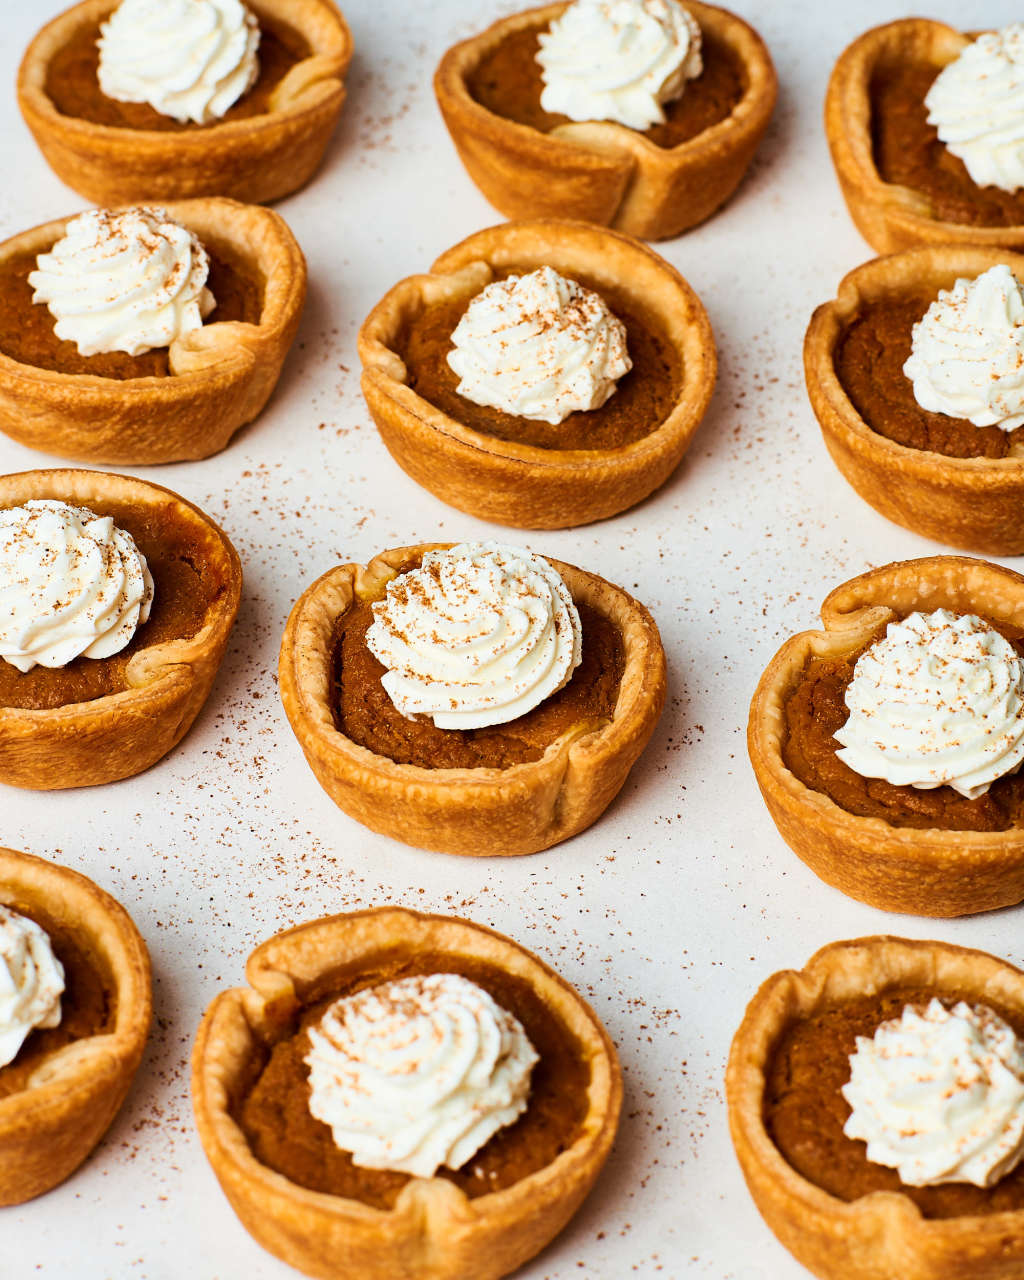 5-Ingredient Mini Pumpkin Pies Are the Cutest Dessert Ever